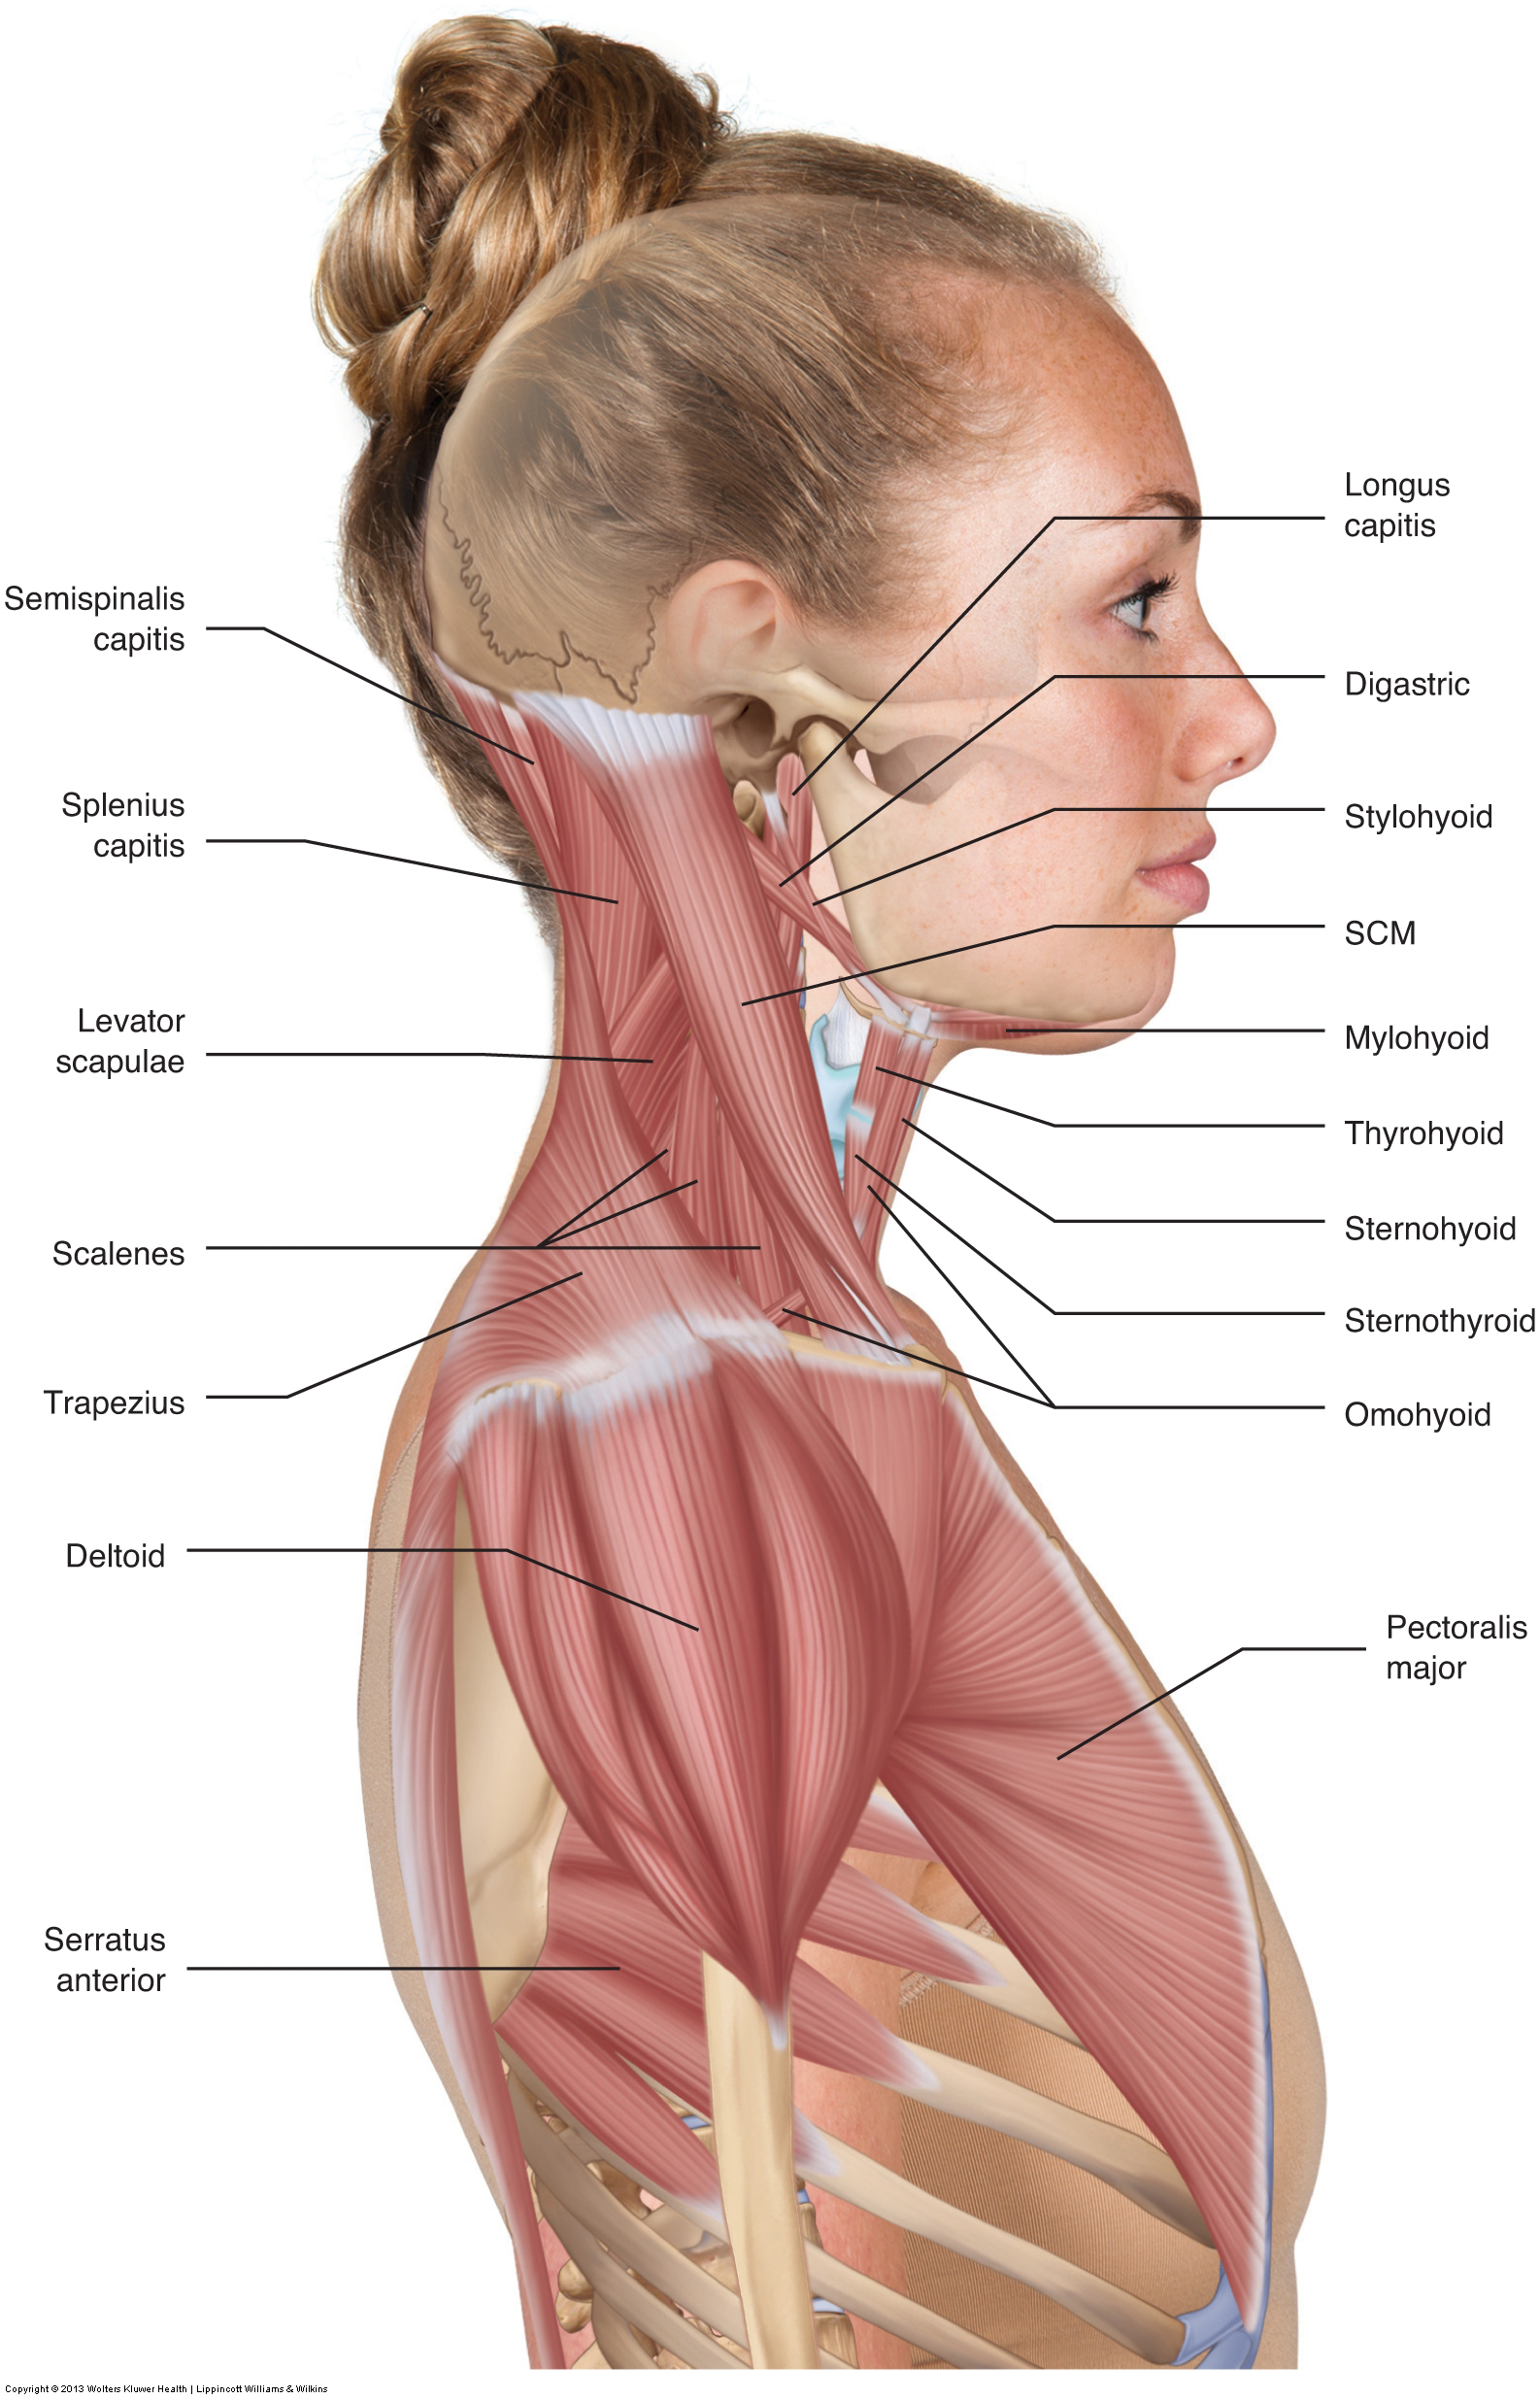 Muscles Of The Neck Musculature Of The Cervical Spine